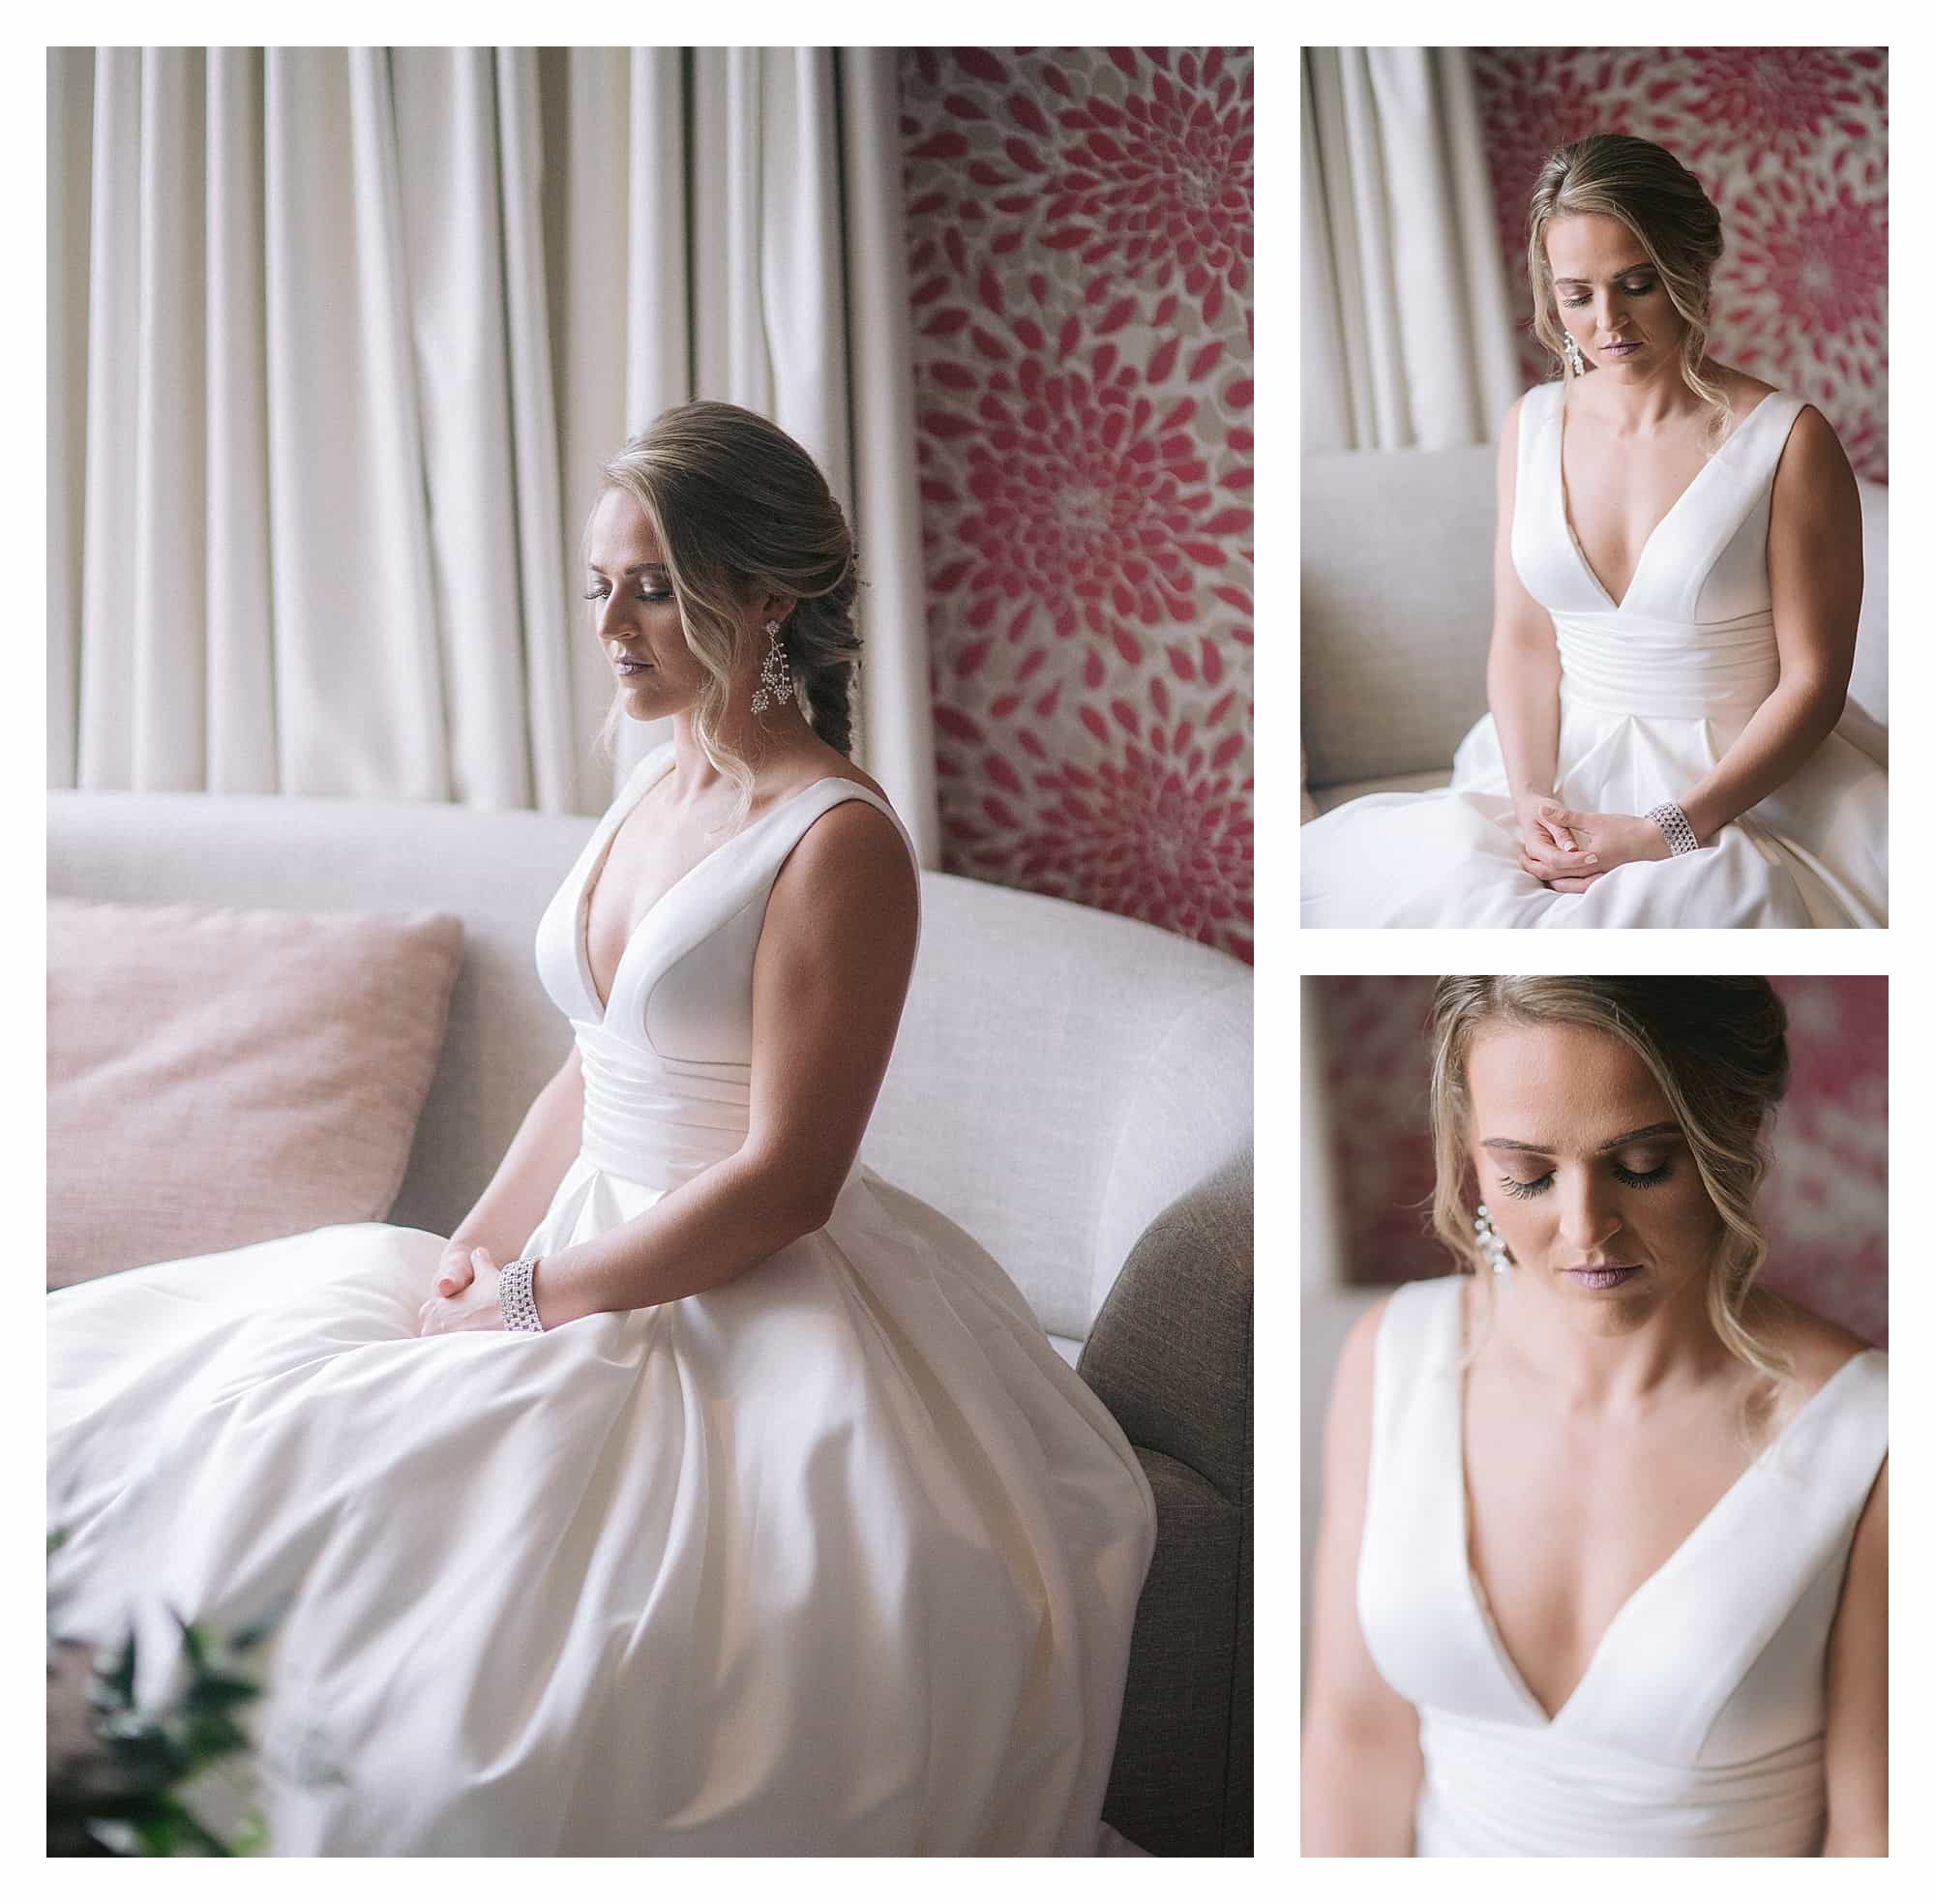 Bride in wedding dress sitting on couch